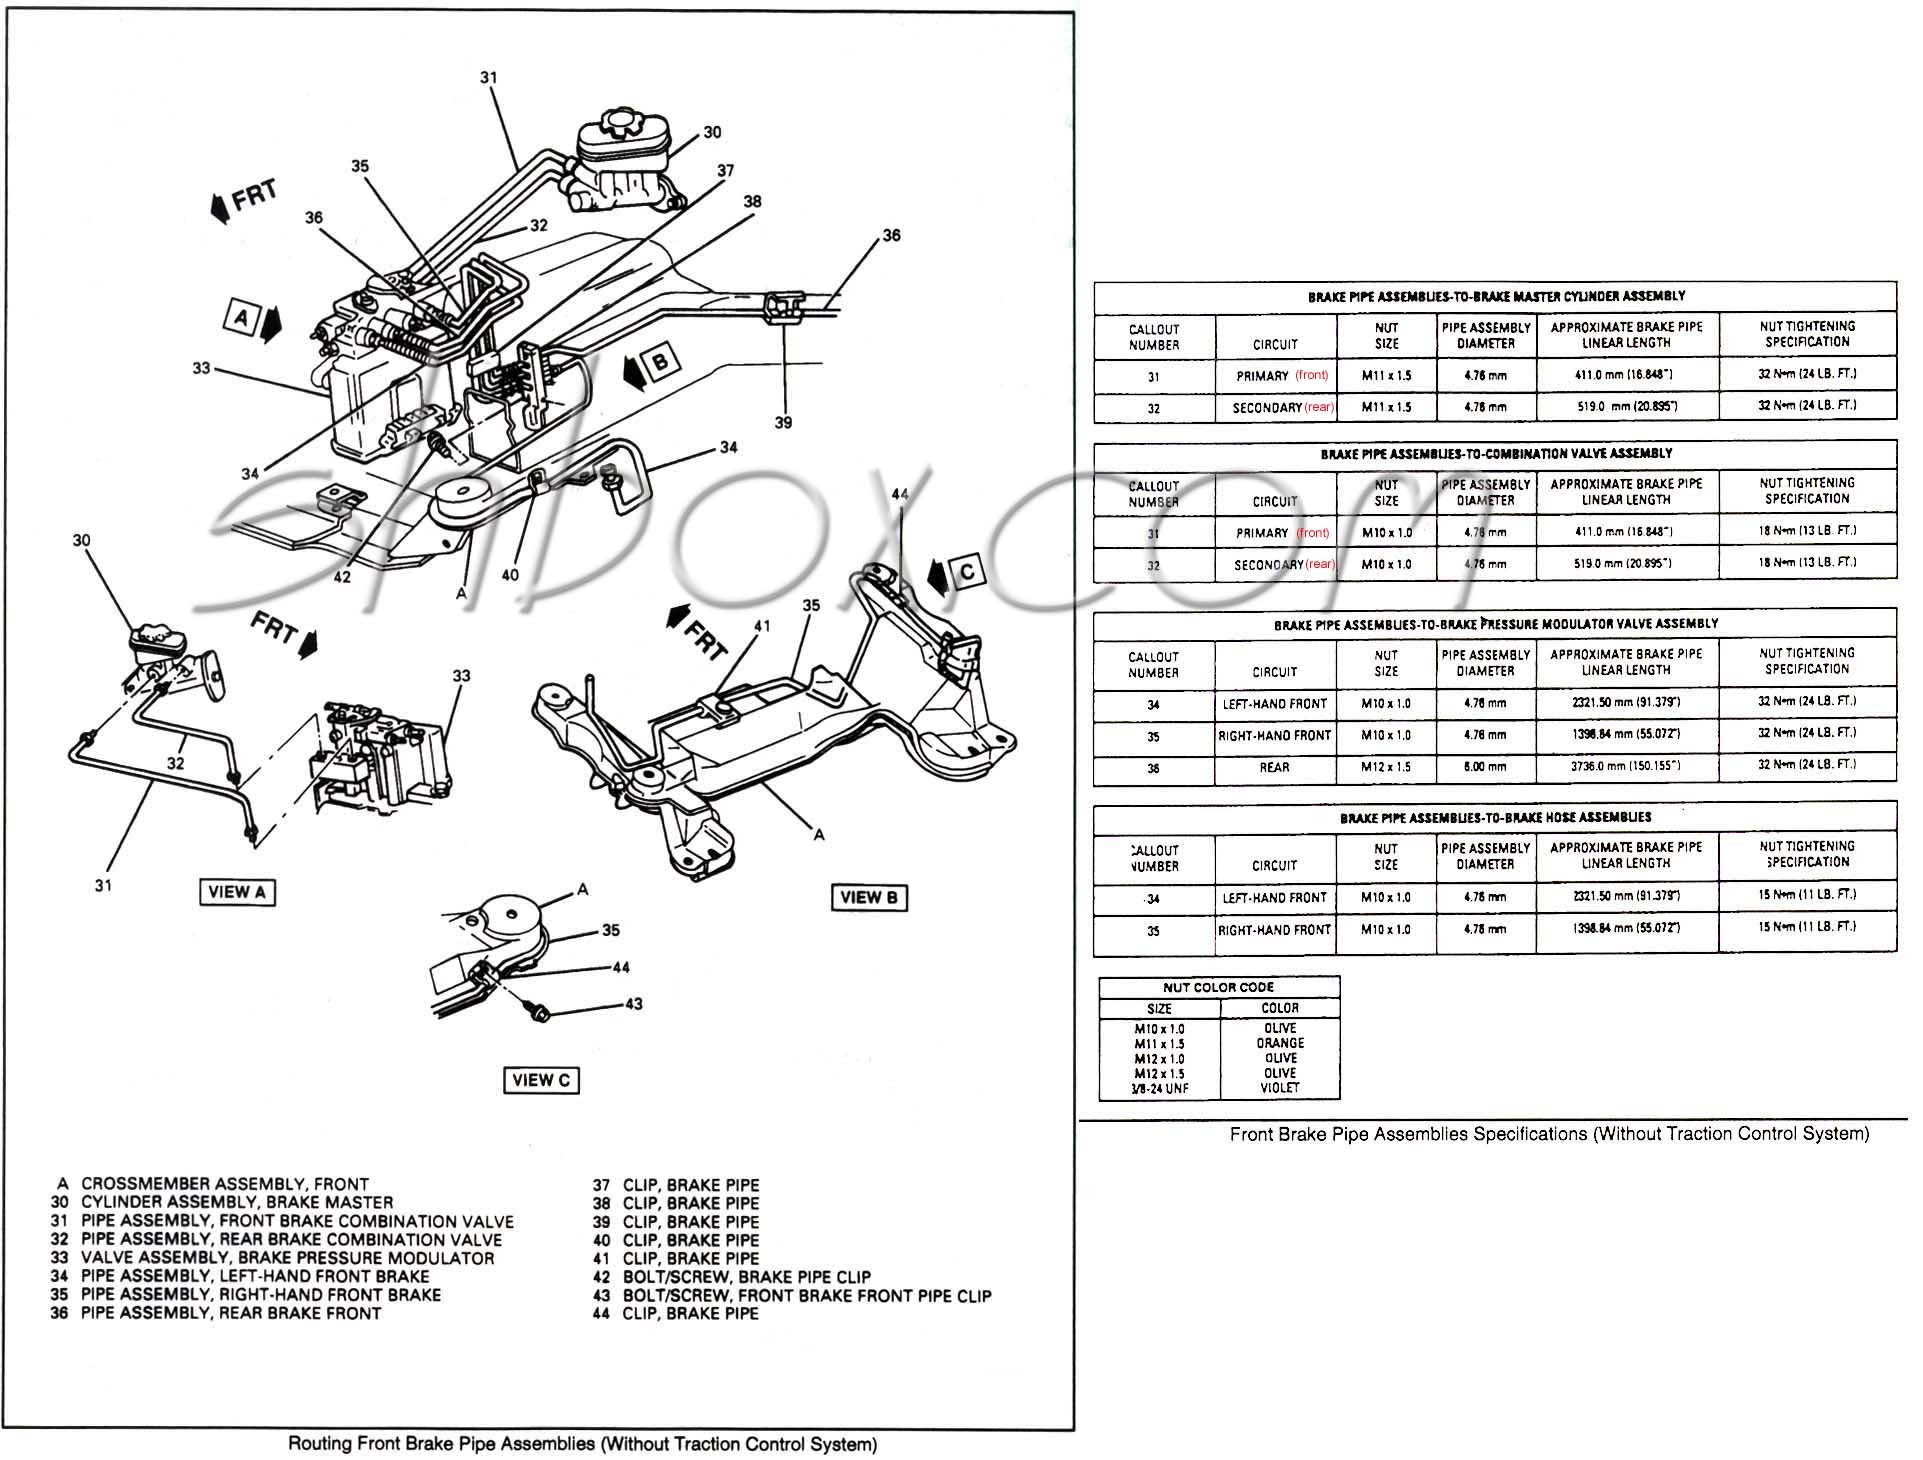 Abs Brake System Diagram Circuit Maker Arduino Gen F Body Proportioning Valve Wiring Valves And Line Locks Page 3 Of